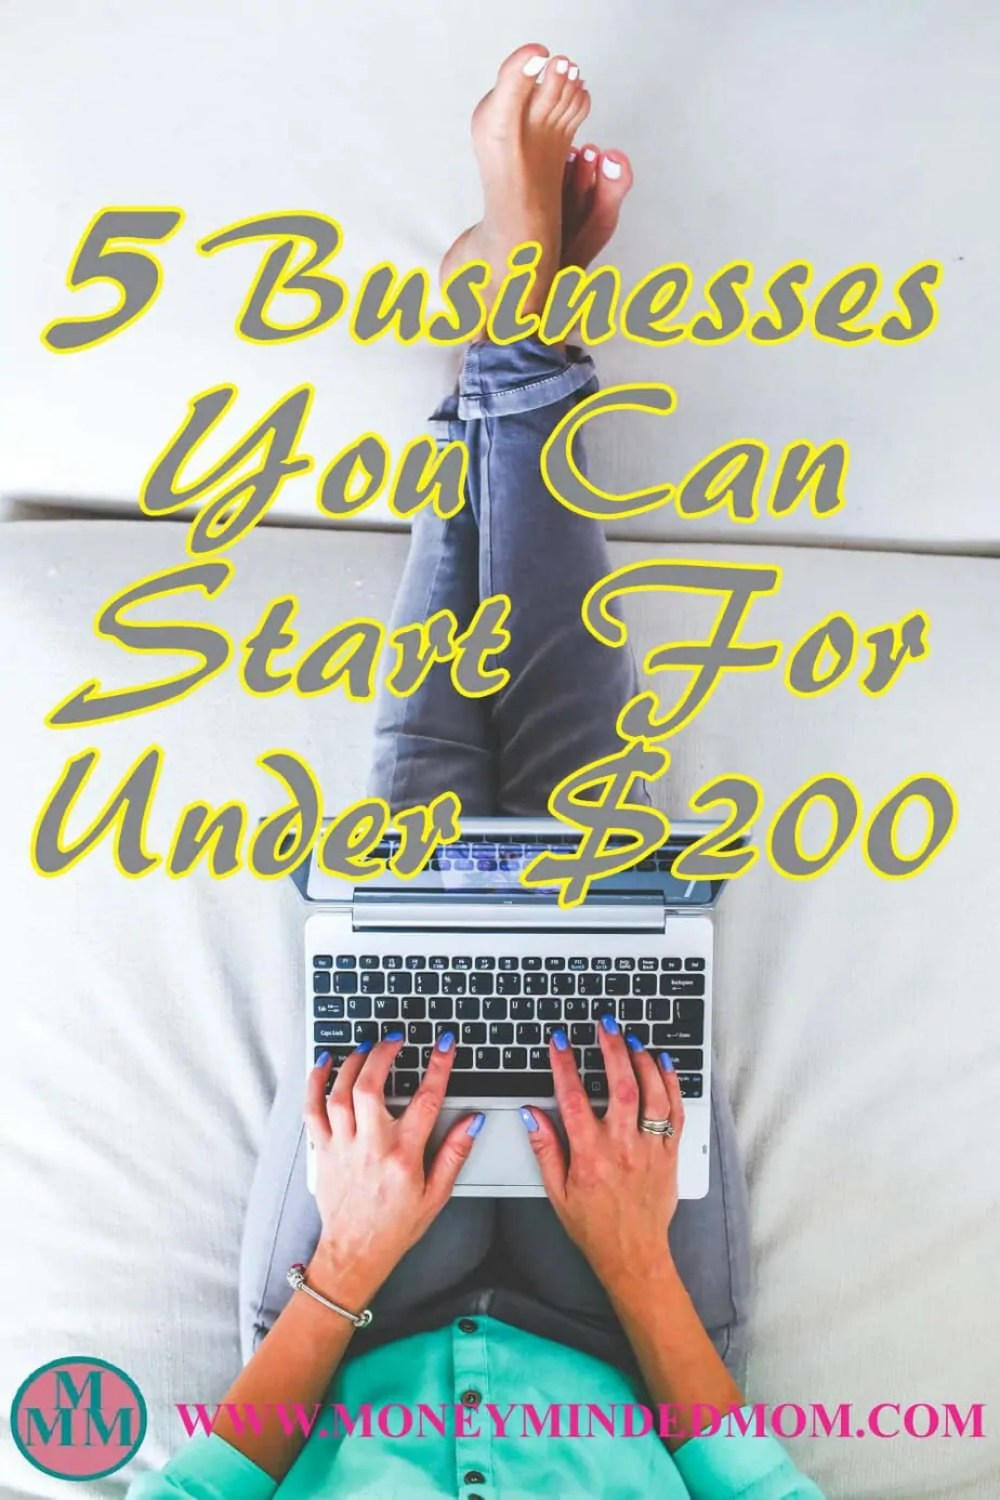 5 Business You Can Start For Under $200